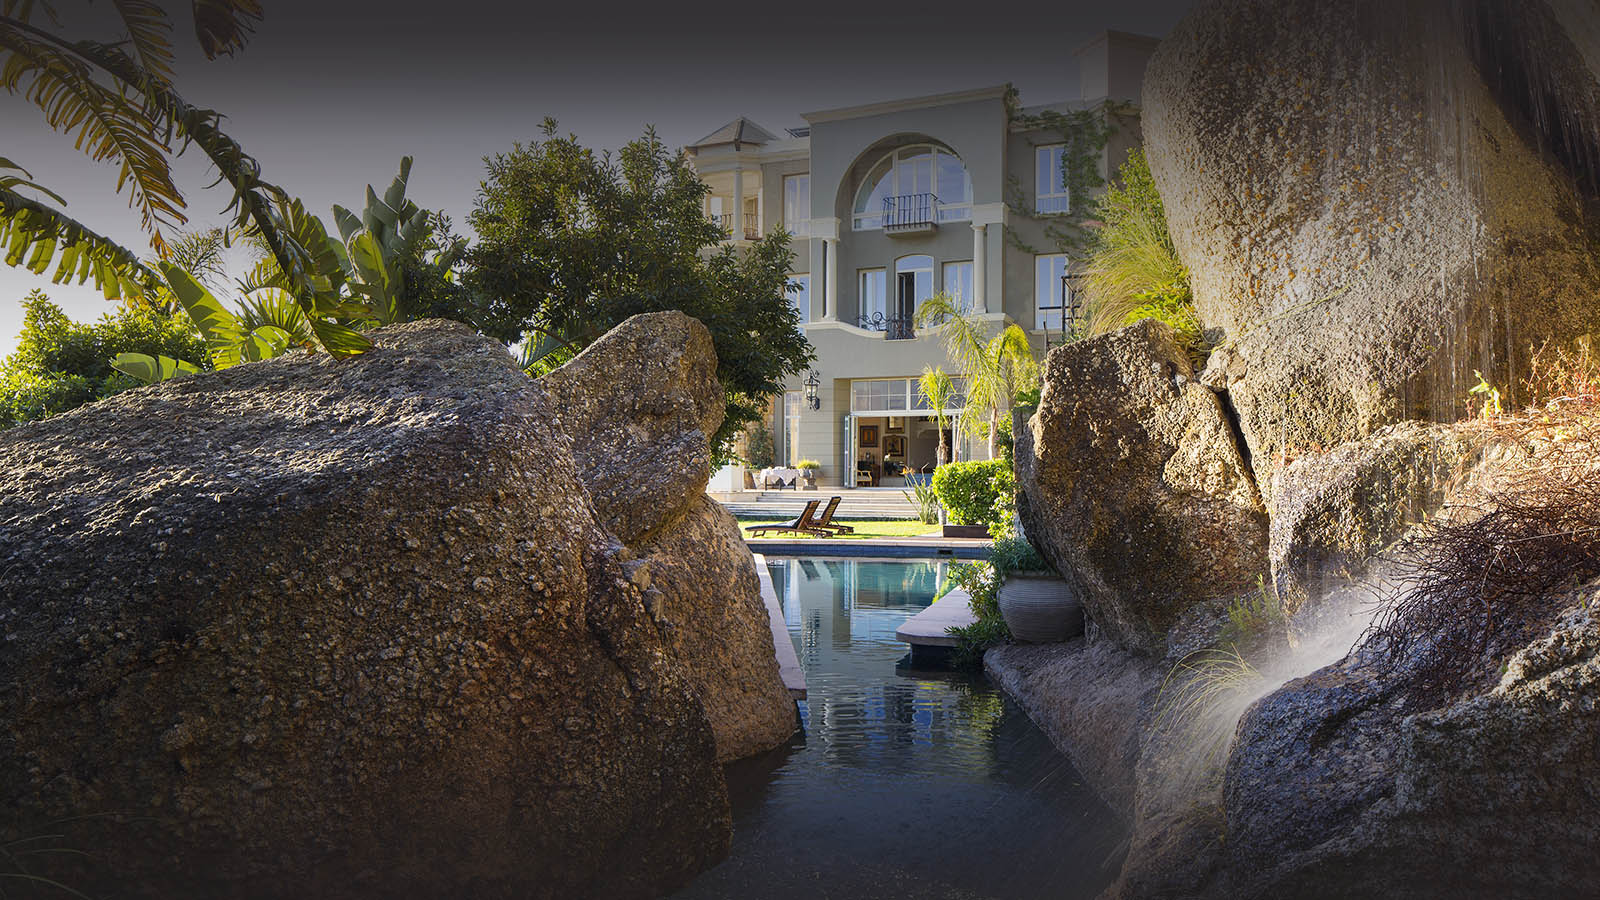 21 nettleton hotel-camps-bay-cape-town-lodges-zambia-in-style-south-africa-luxurious-romantic-getaway-pool